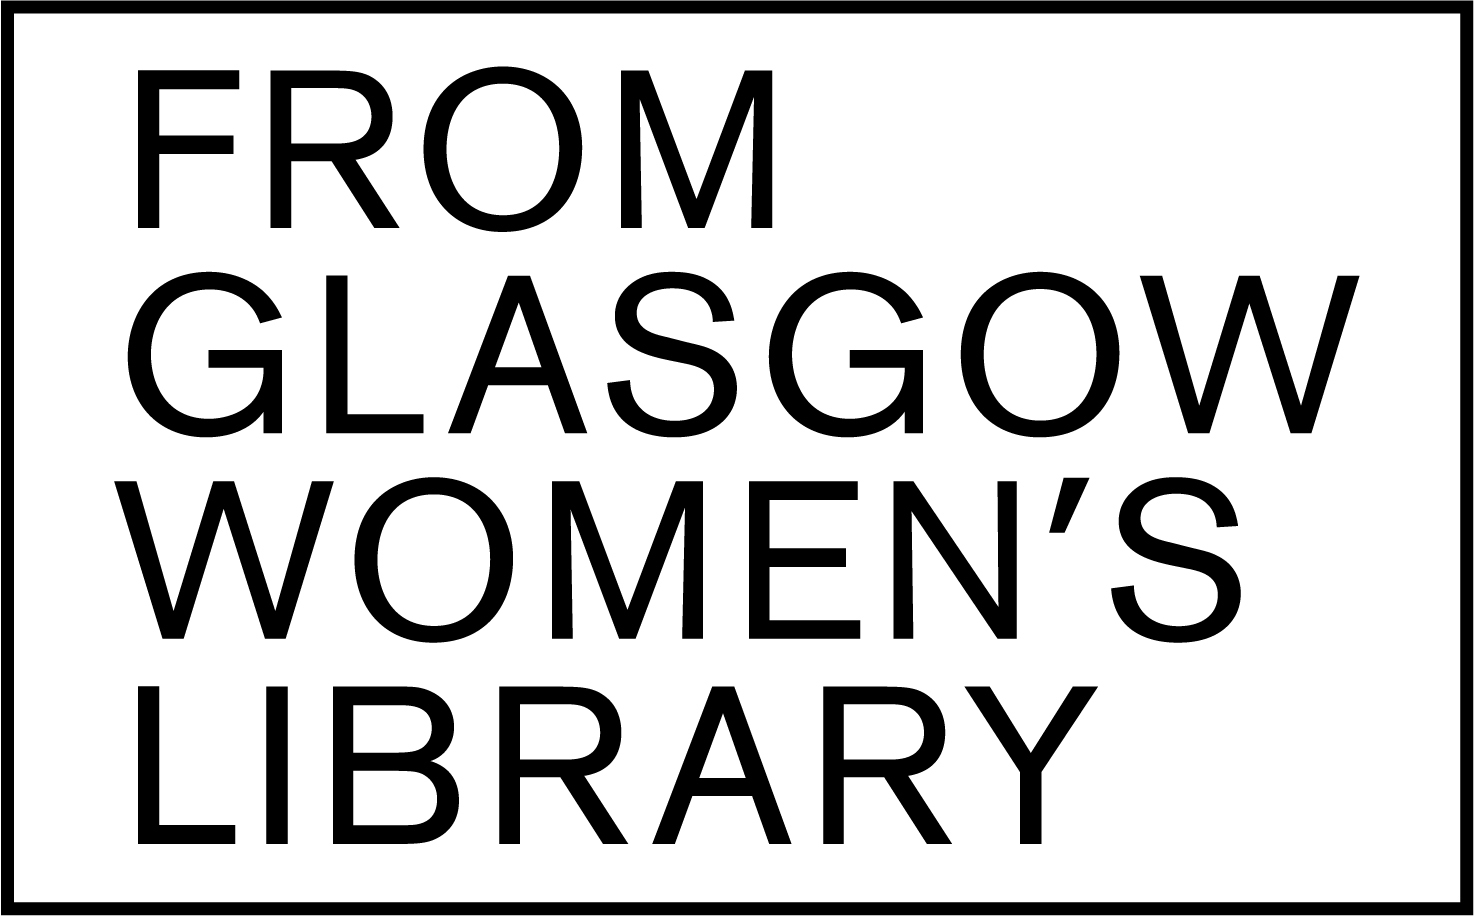 From Glasgow Women's Library